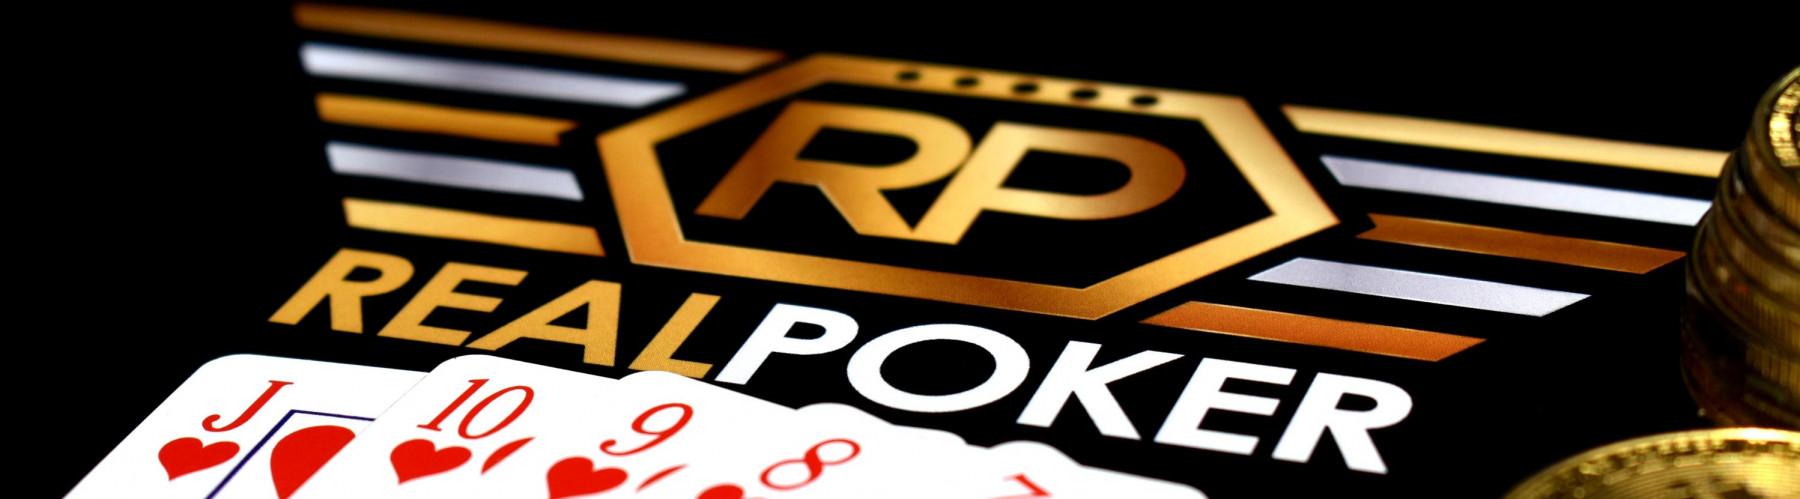 The major poker learning websites